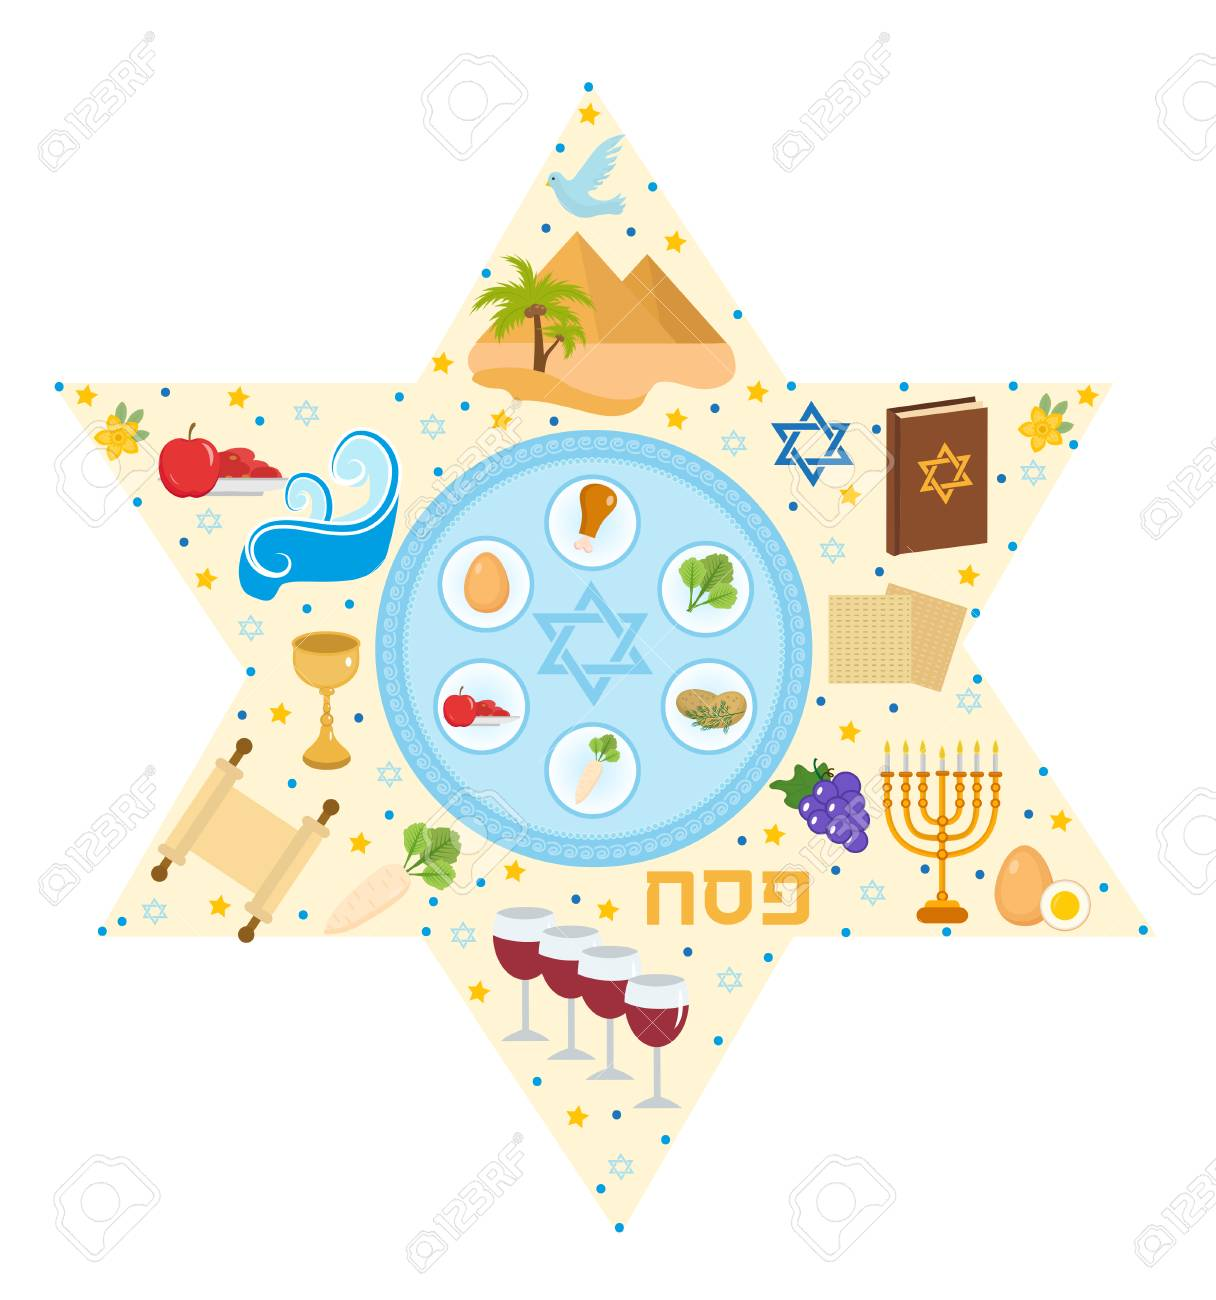 Passover greeting card with icons in the shape stars pesach stock illustration passover greeting card with icons in the shape stars pesach template for your design vector illustration m4hsunfo